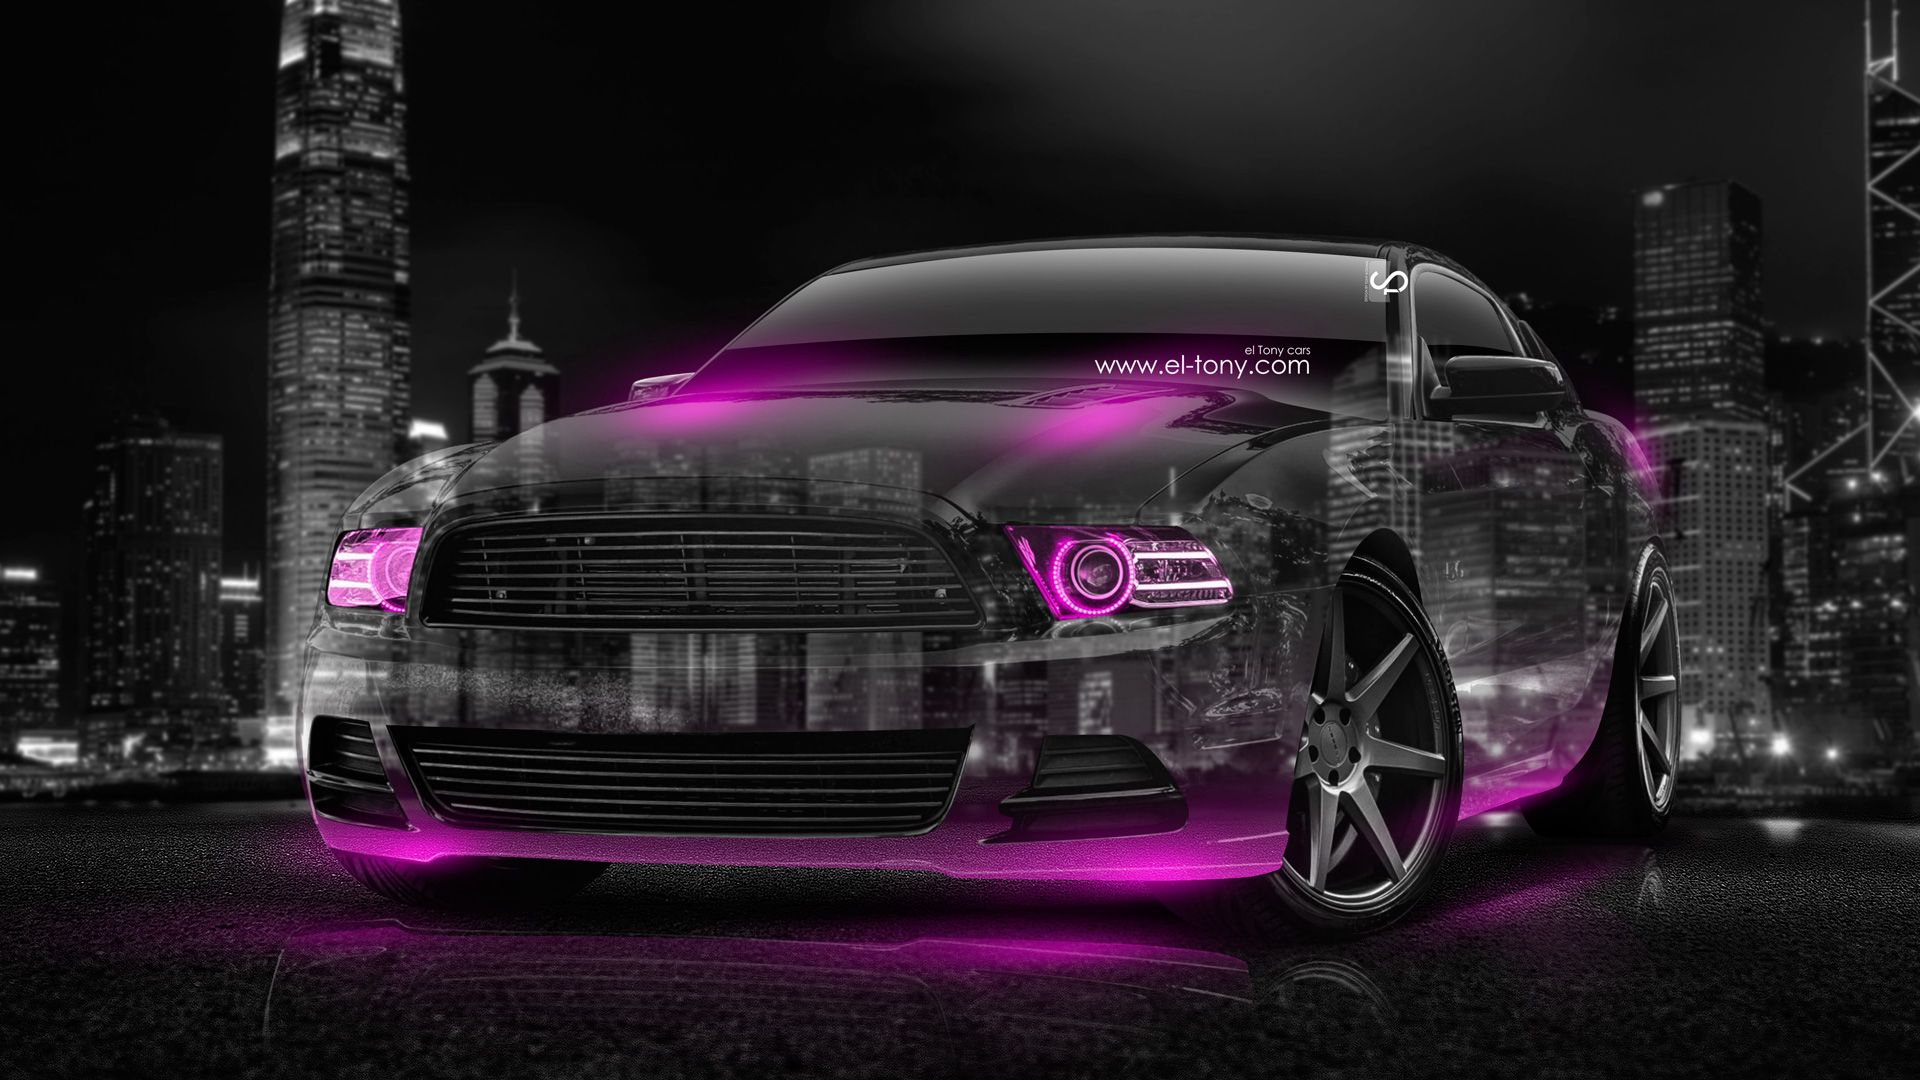 Merveilleux Ford Mustang GT Muscle Crystal City Car 2014